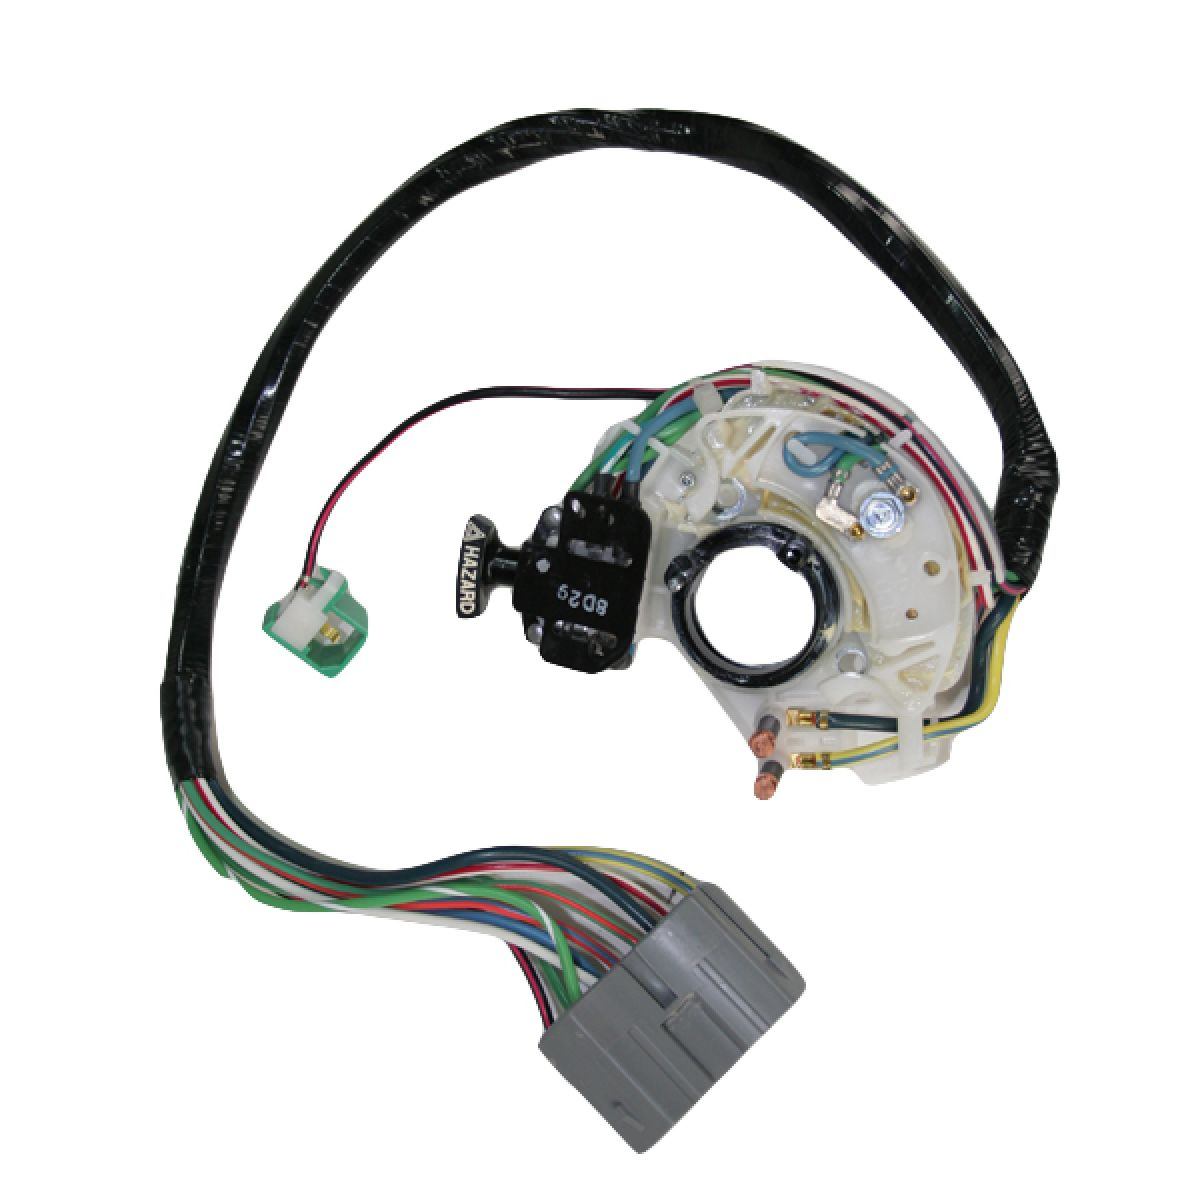 turn signal switch for 84 91 ford bronco f series pickup truck w rh ebay com